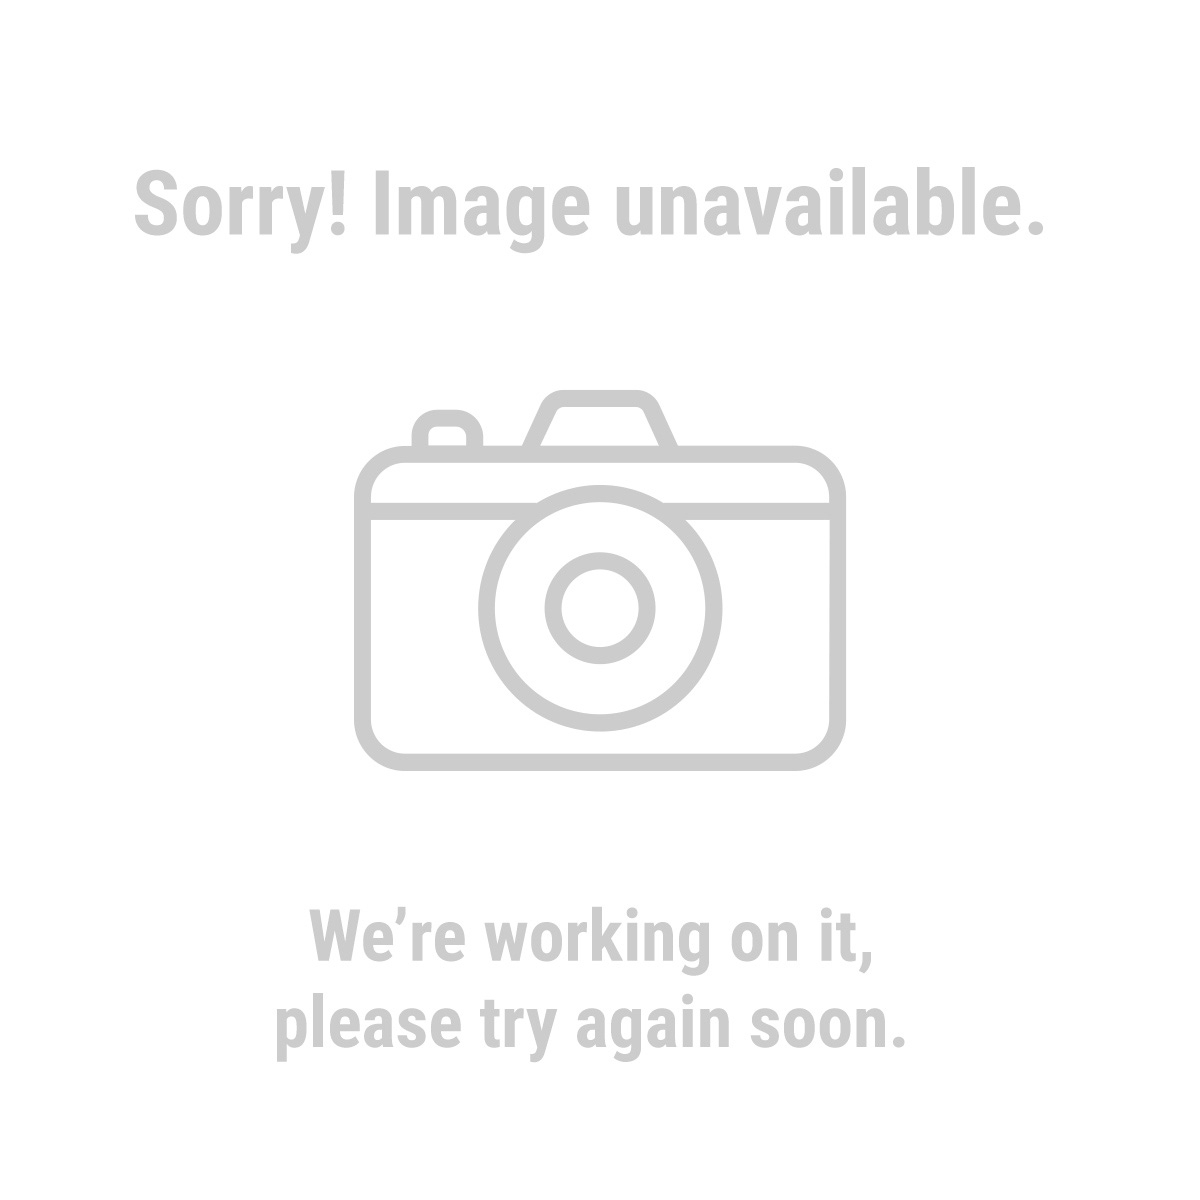 66129 5 Piece Stainless Steel Wheel and Brush Set